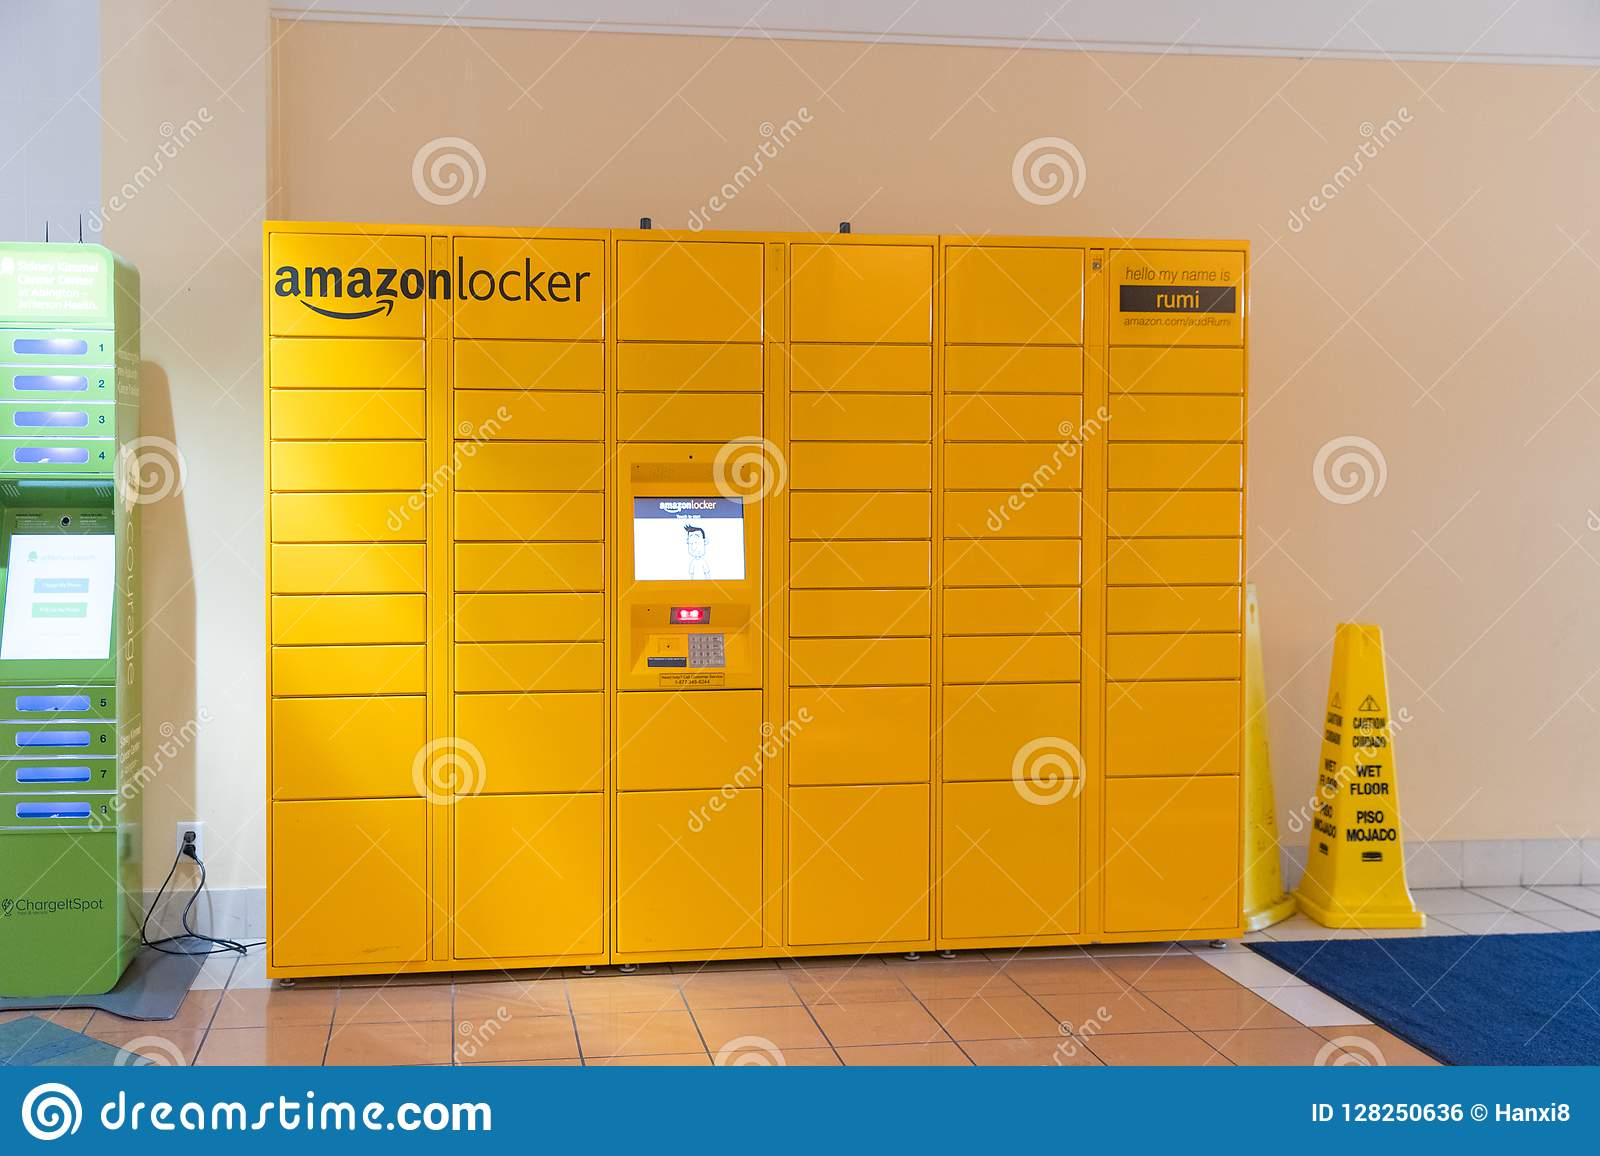 Image of an Amazon packages. Amazon is an online company and is the largest retailer in the world.